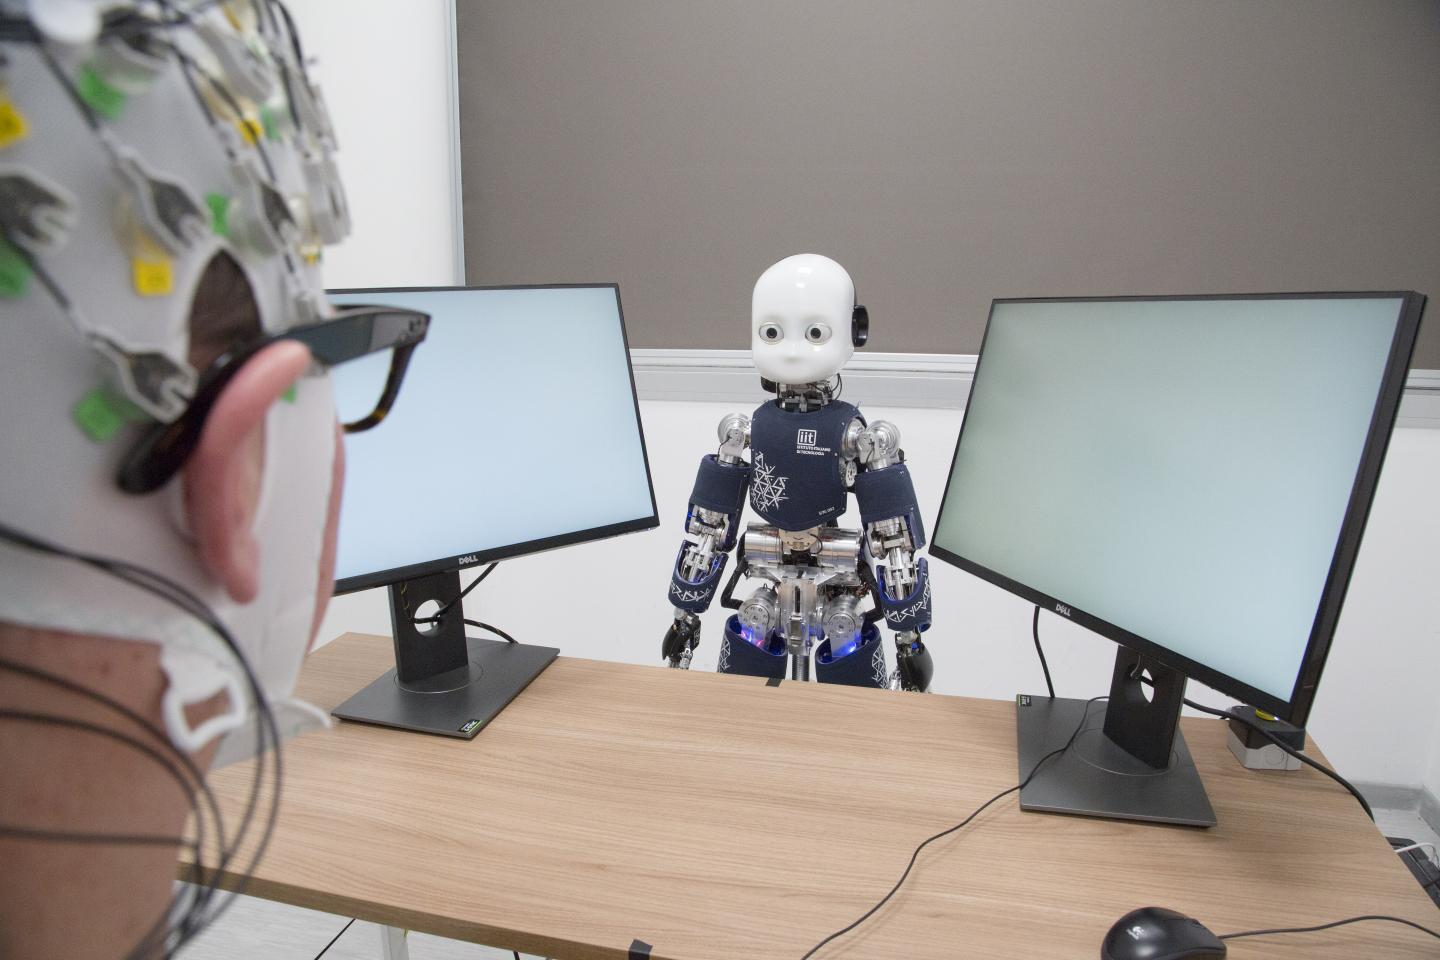 Difference in attitudes towards humanoid robots can be correlated with brain activity, measured by electroencephalogram (EEG).